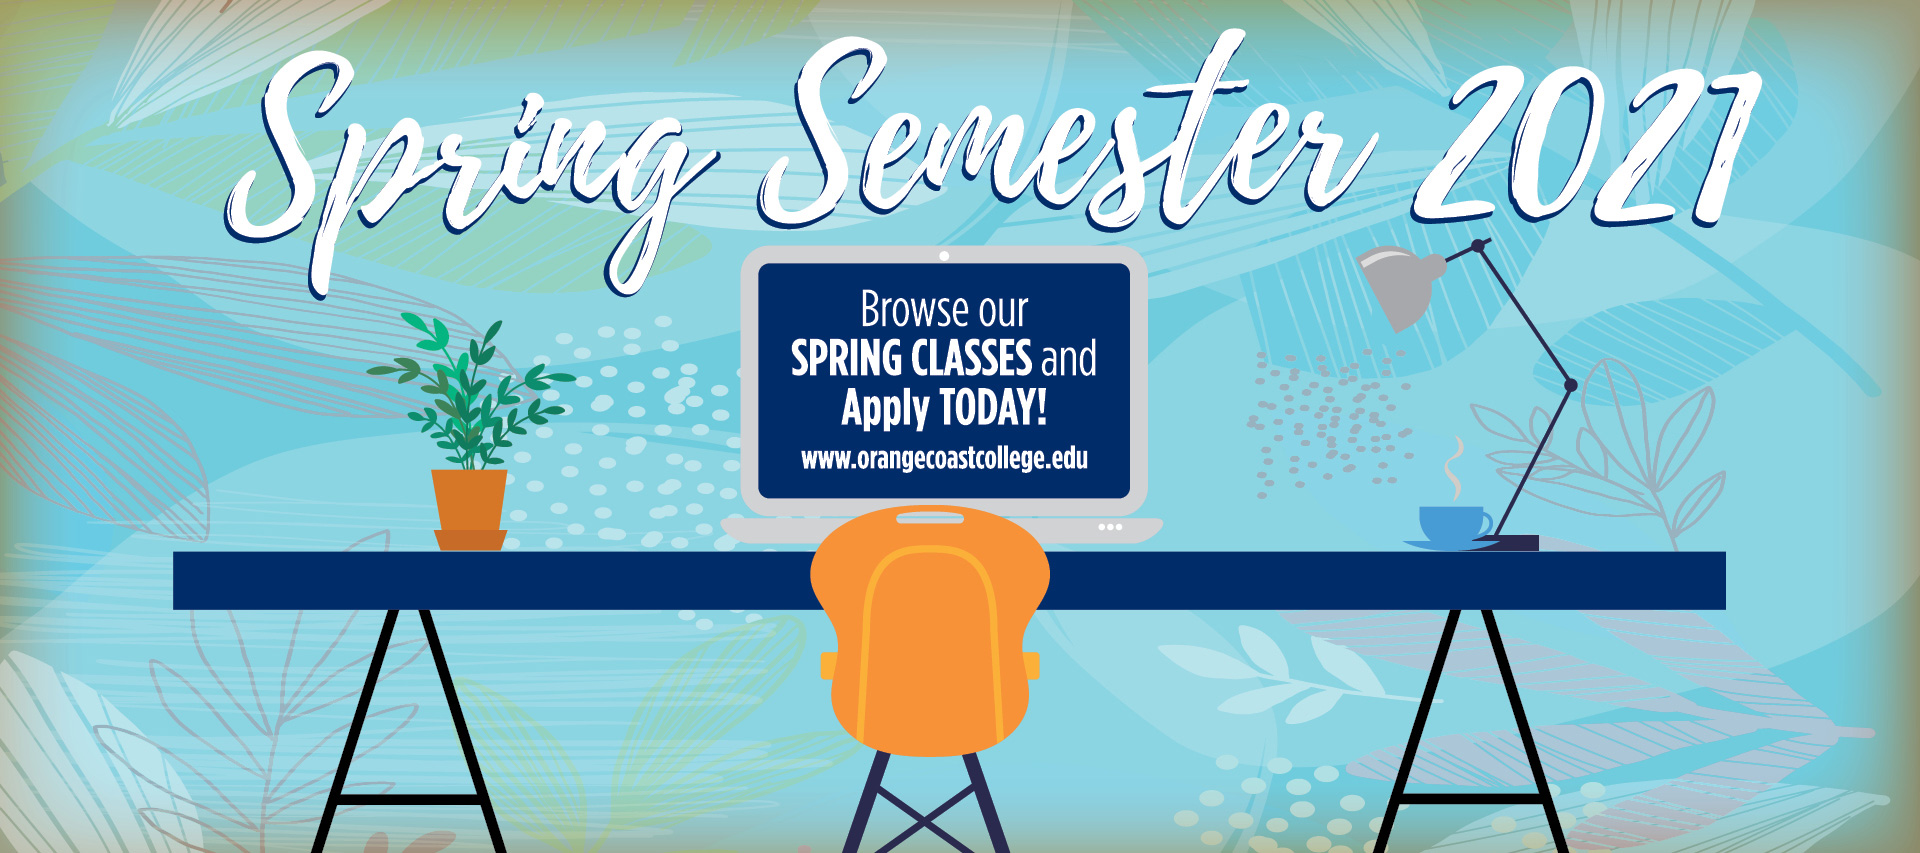 Spring Semester 2021: Browse our Classes and Apply Today